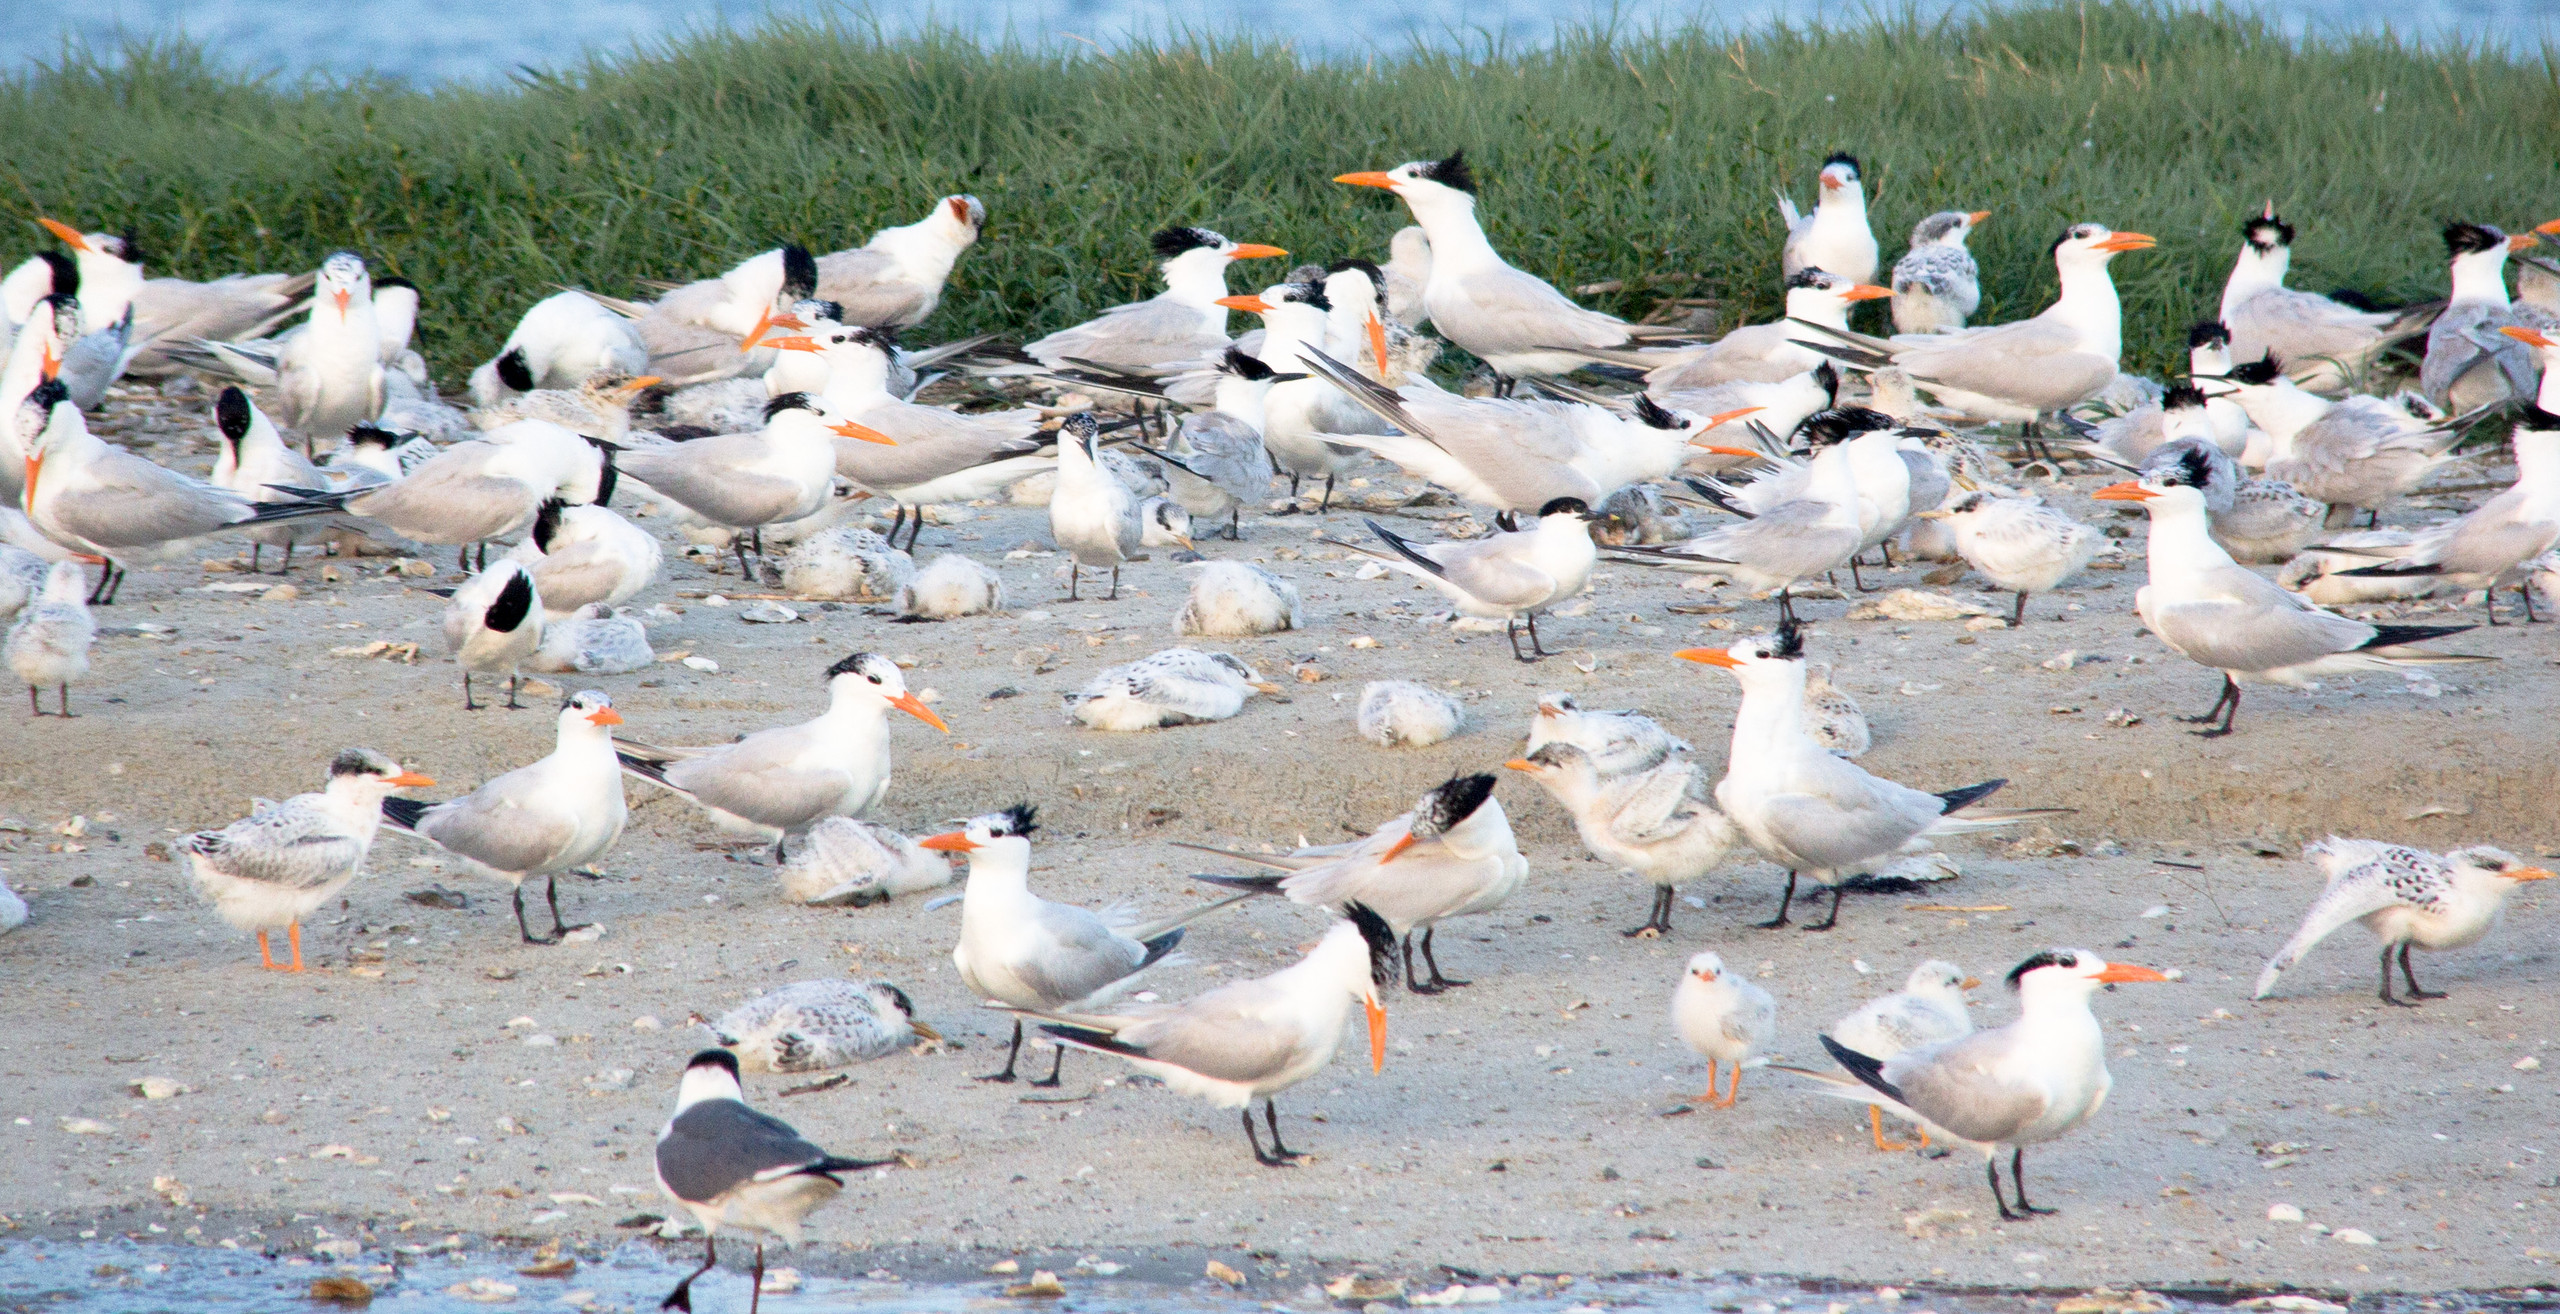 Fluffy juvenile Royal Terns rest on the ground while adults stand watch.